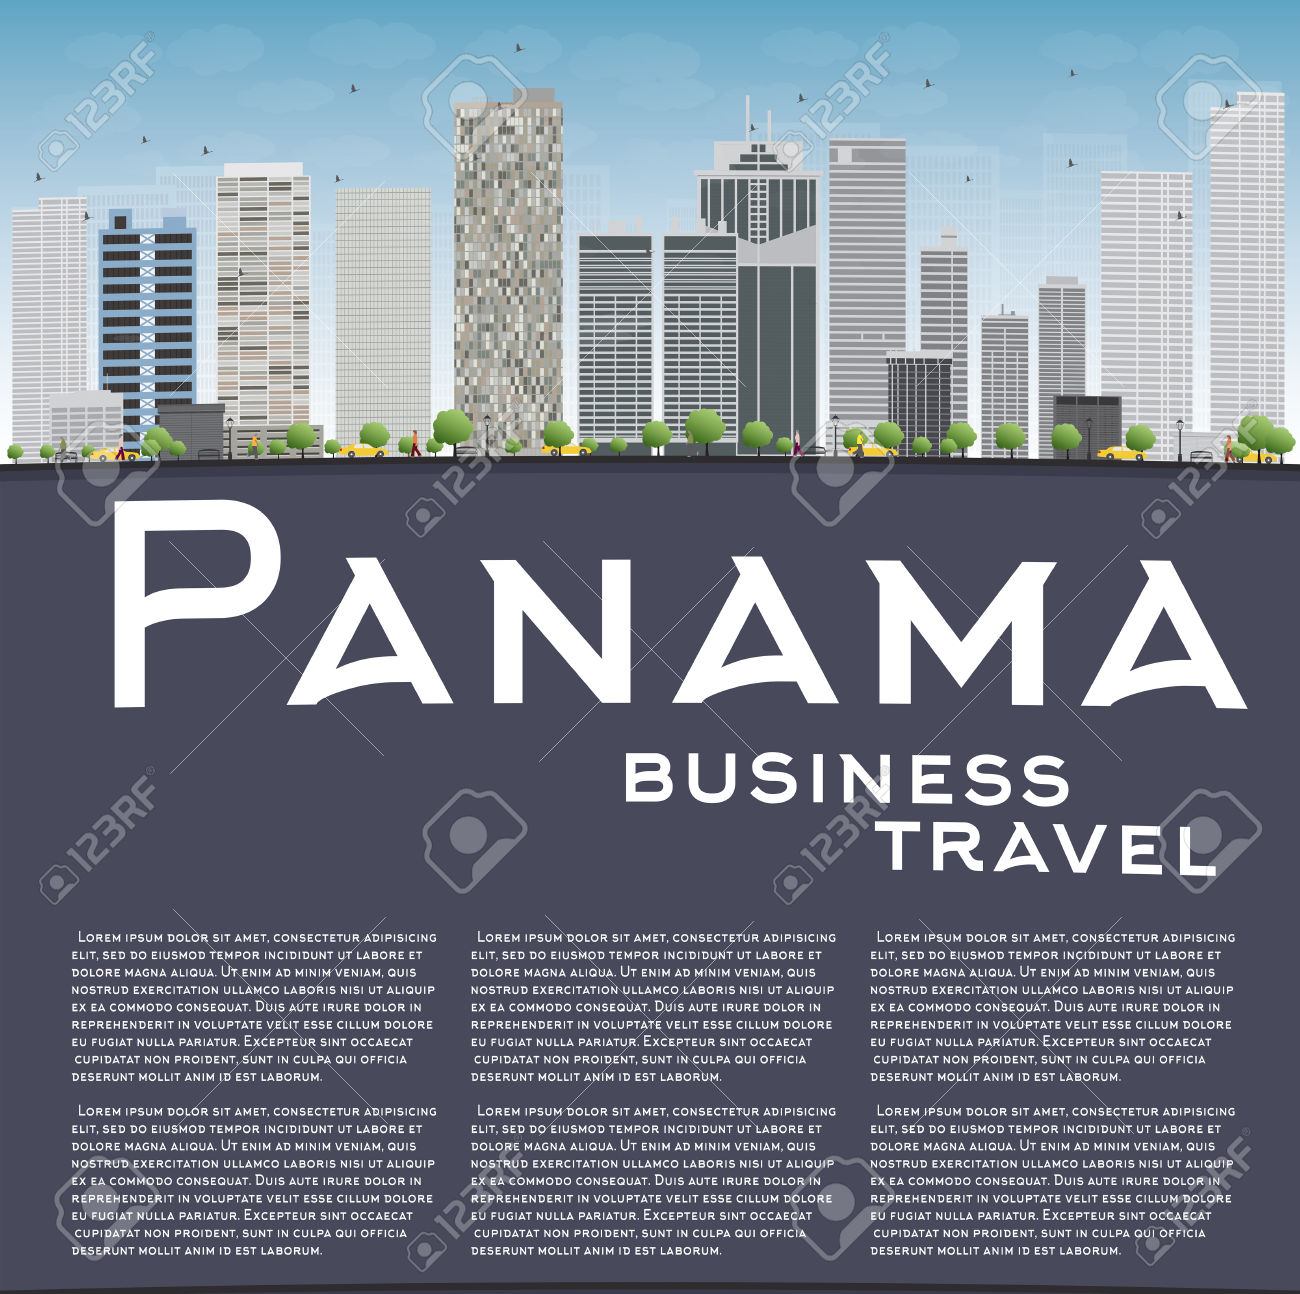 350 Panama Outline Stock Vector Illustration And Royalty Free.